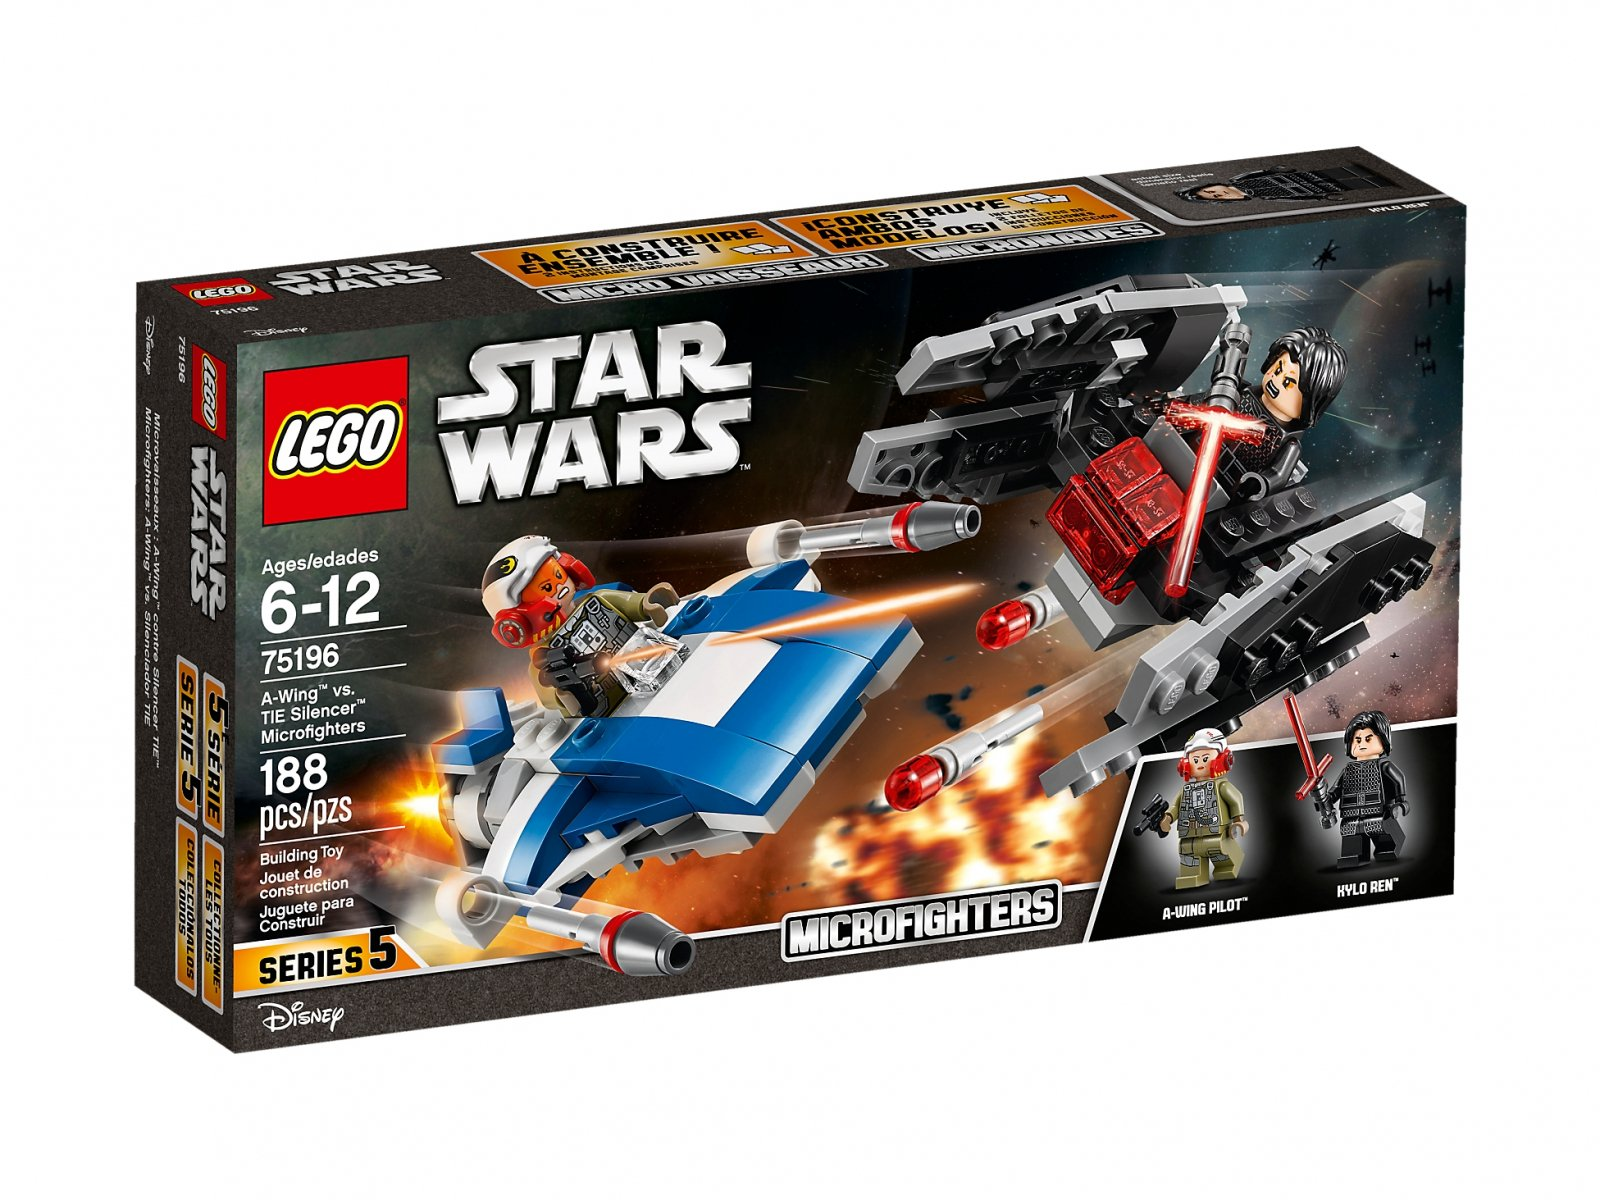 LEGO Star Wars™ 75196 A-Wing™ kontra TIE Silencer™